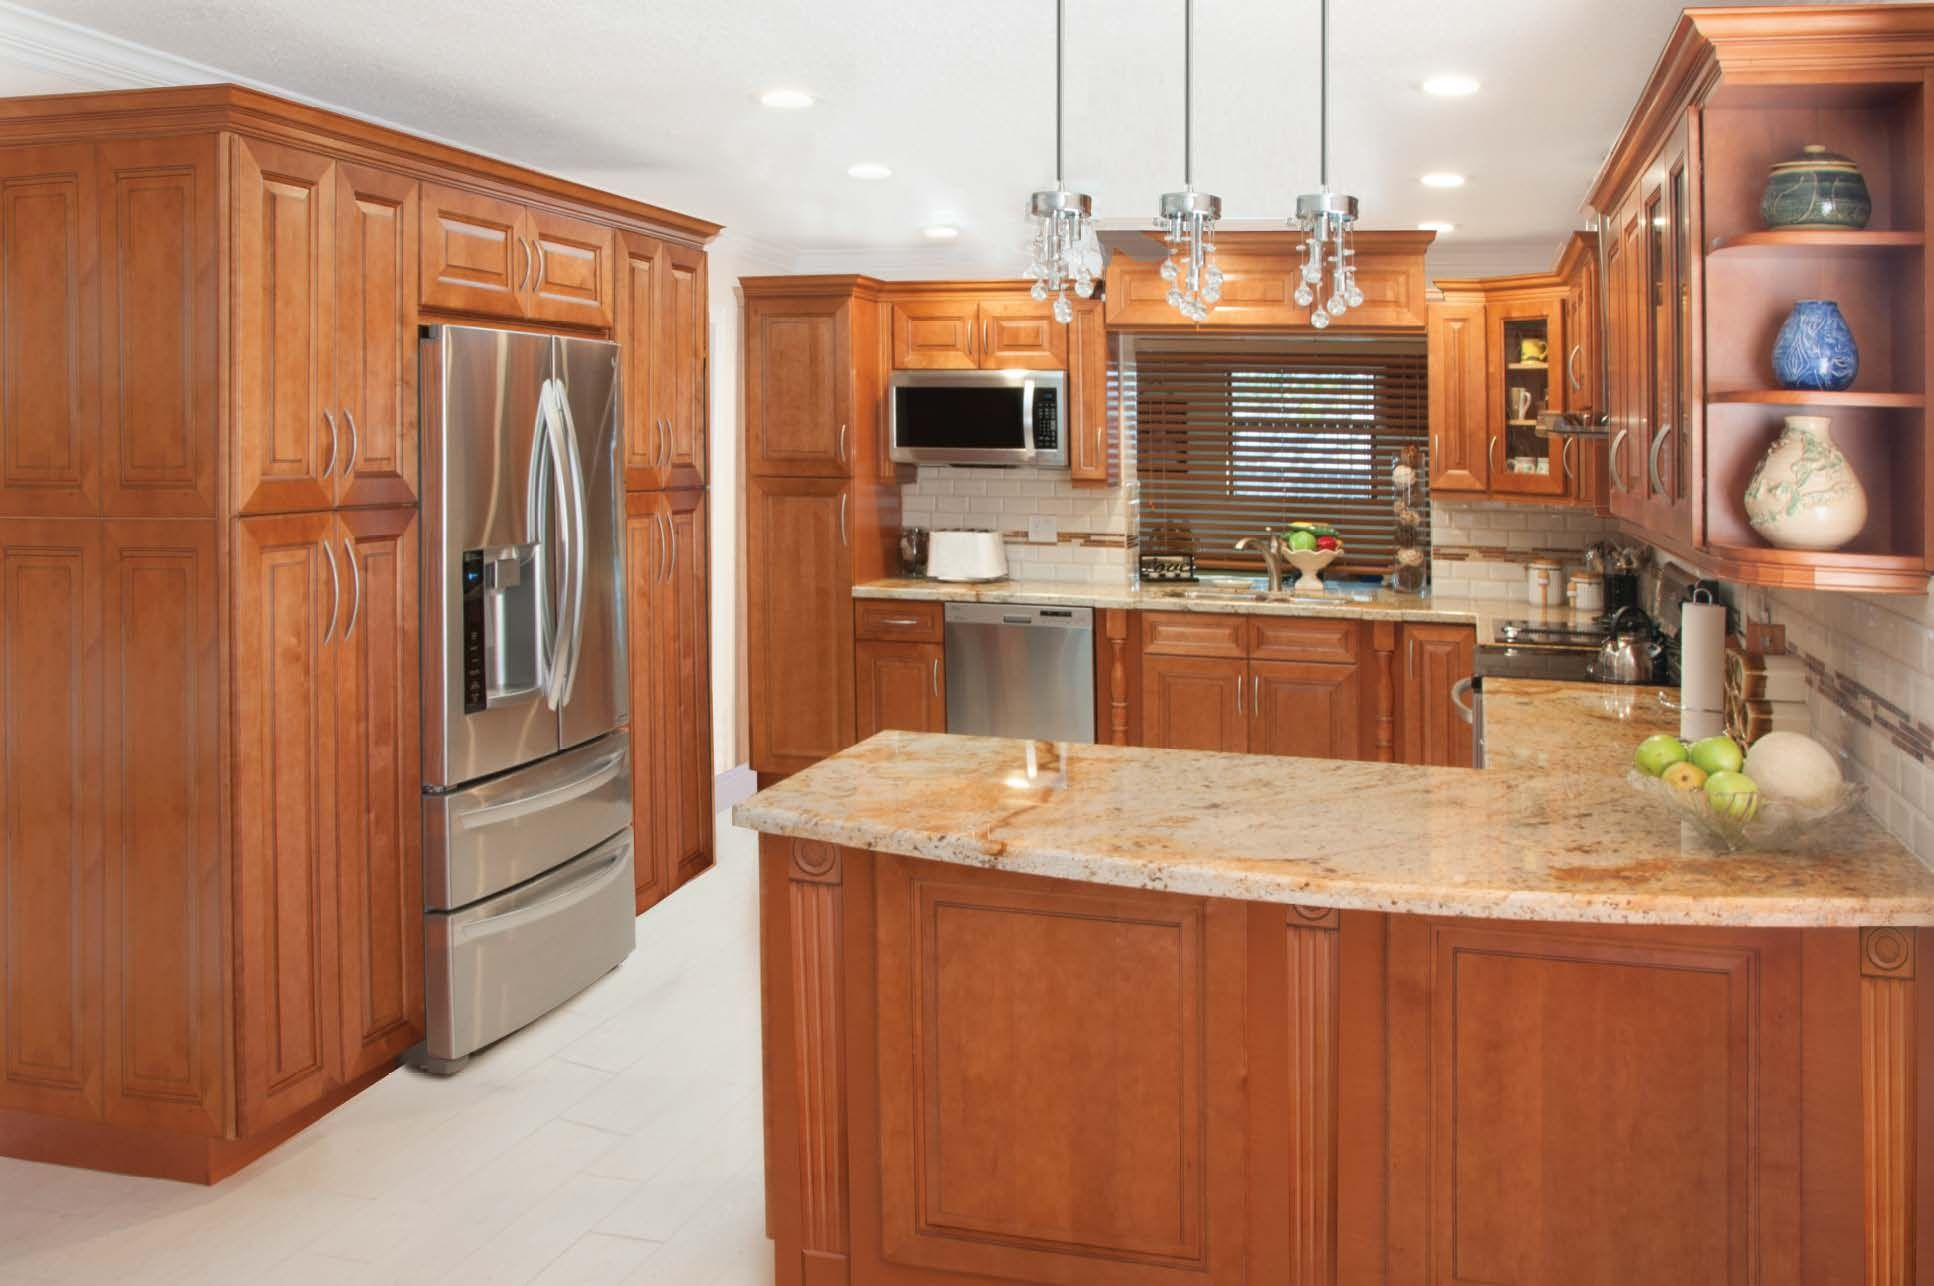 Ready To Assemble Kitchen Cabinets Rta Cabinet Store Shop Kitchen Cabinets Assembled Kitchen Cabinets Kitchen Cabinets